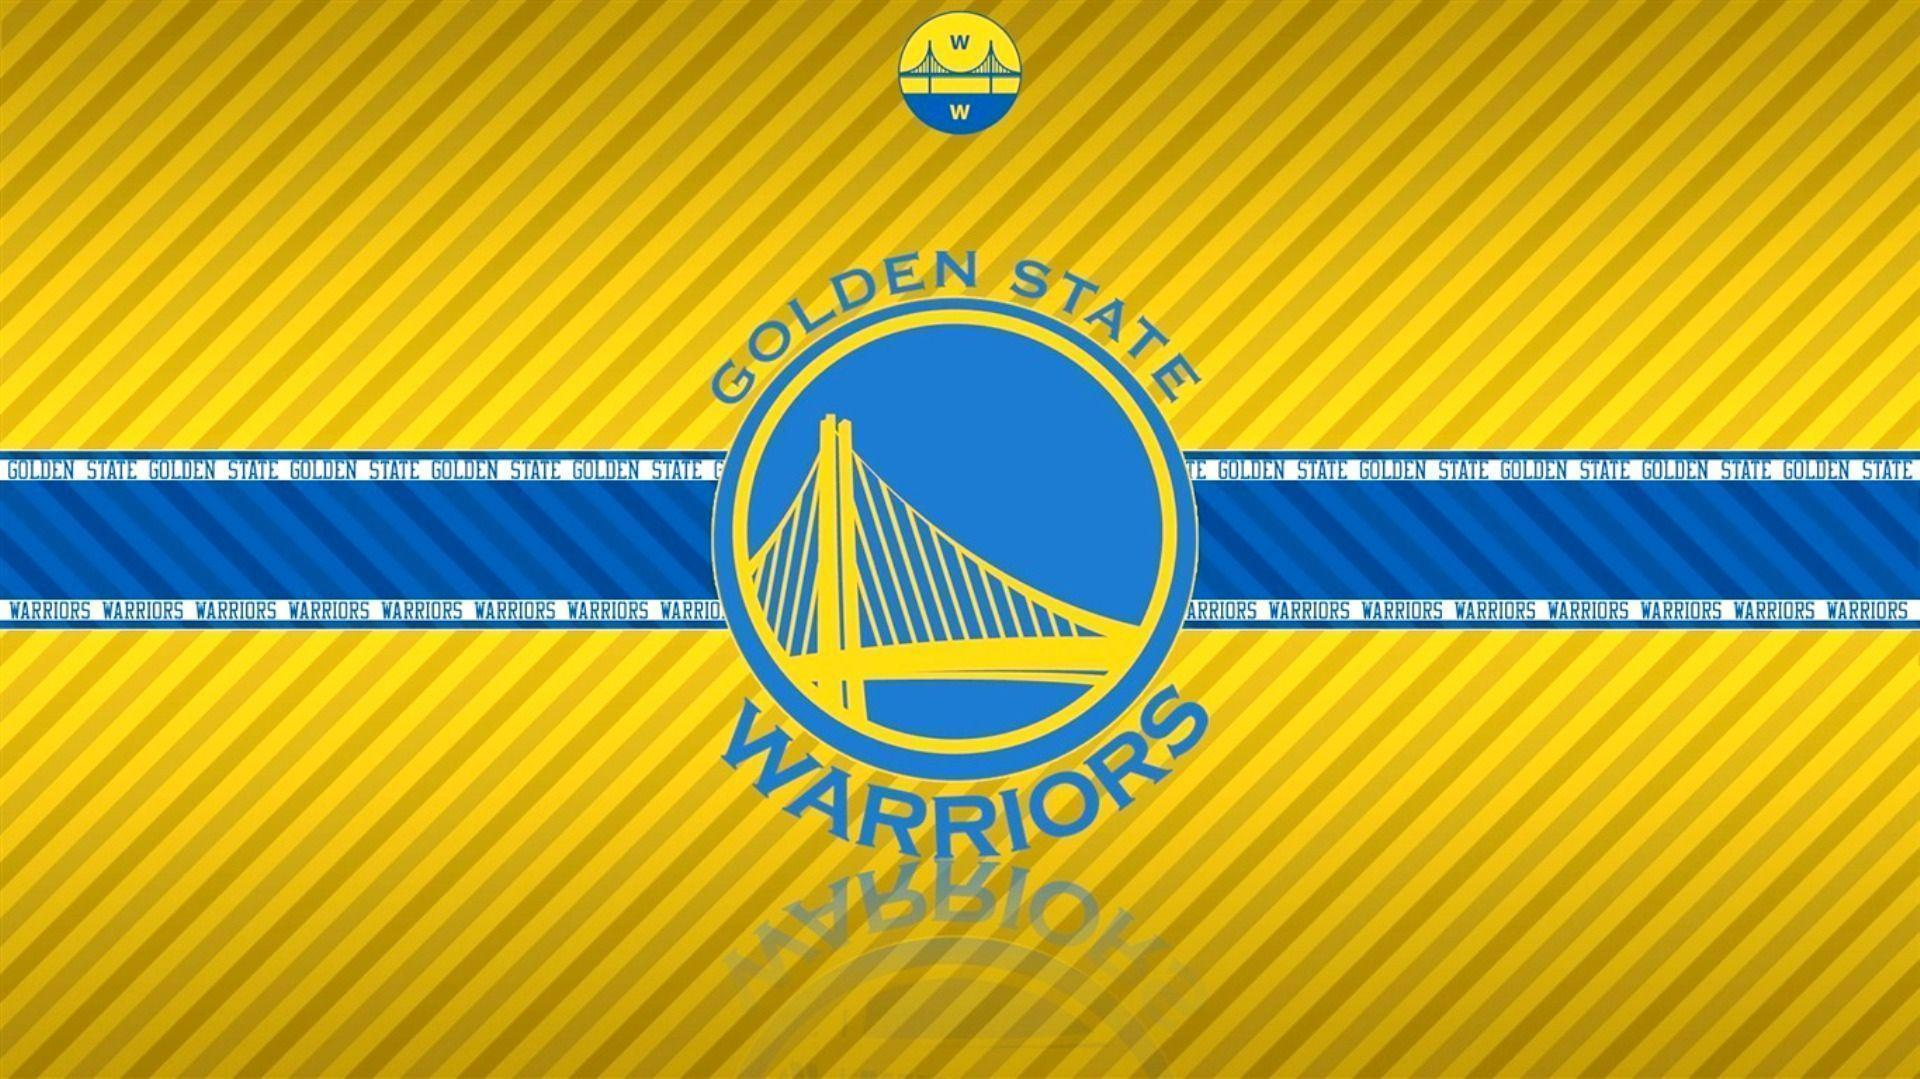 NBA Team Logos Wallpapers 2015